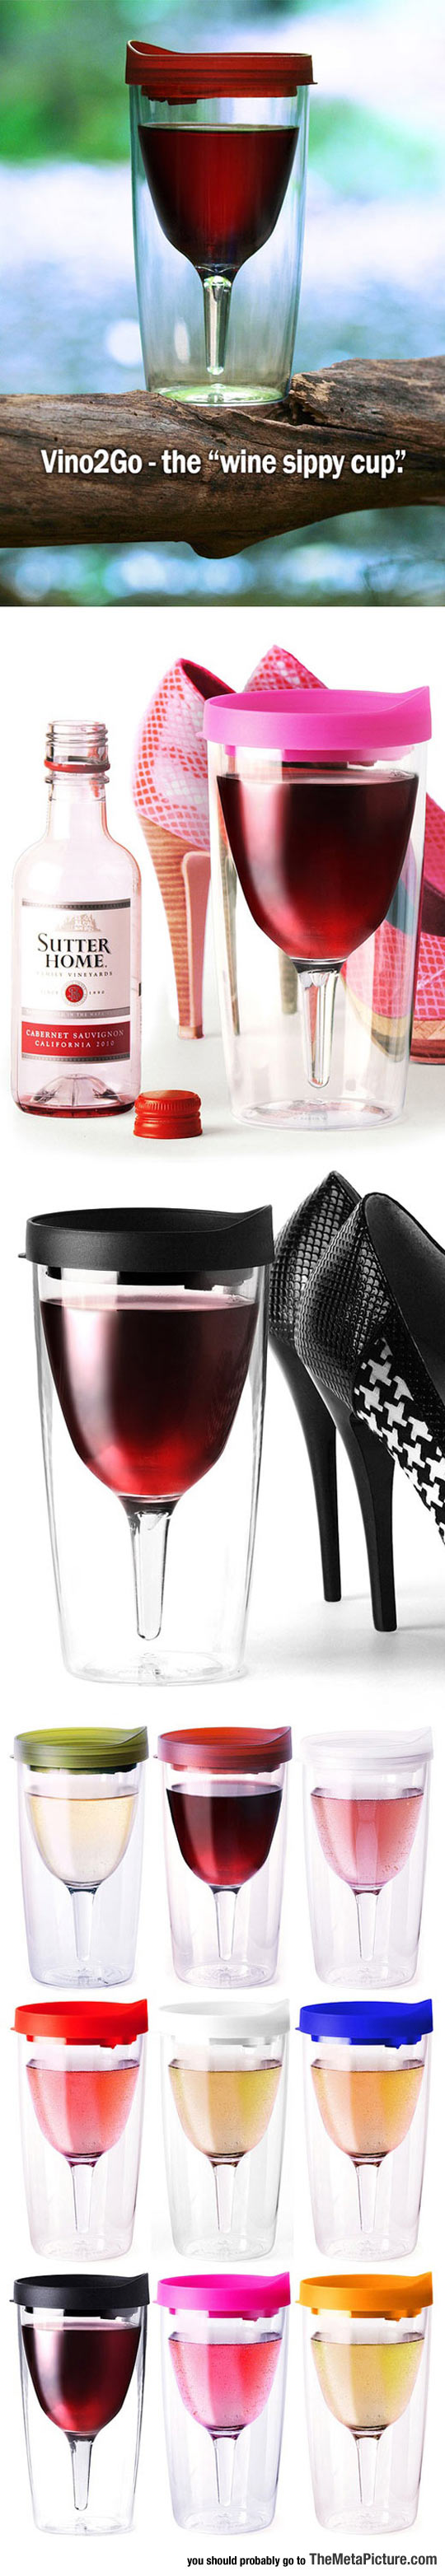 cool-wine-glass-cup-sippy